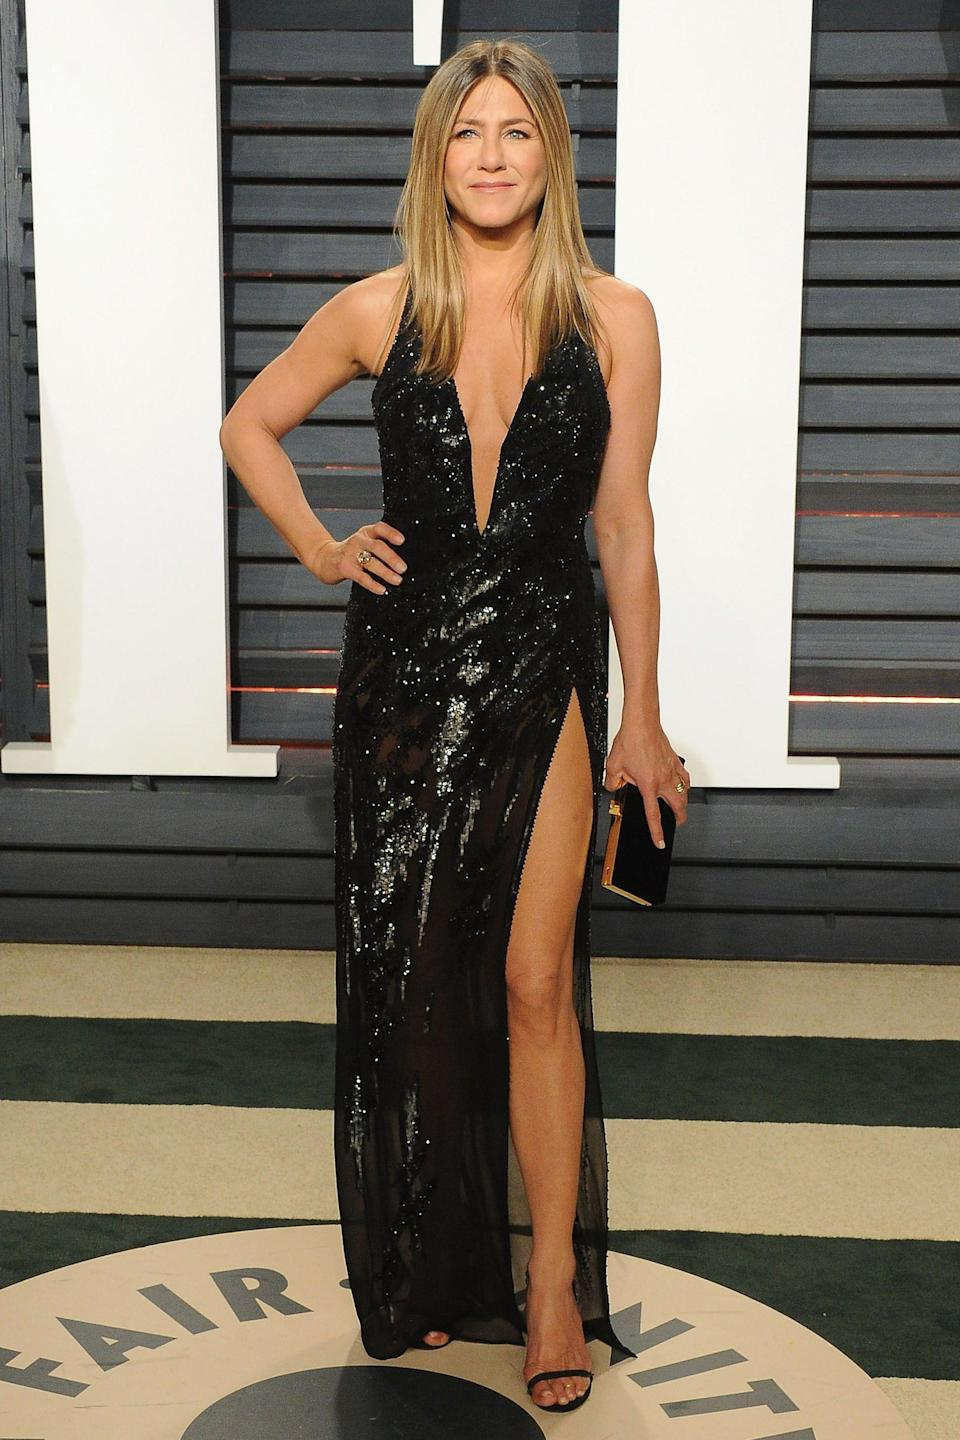 <p>Jennifer Aniston works hard to stay in shape, but her approach is still laid back. At 51, the actress looks strong and confident with glowing skin - and doesn't take fitness too seriously. Here are the health and wellness habits she swears by.</p>